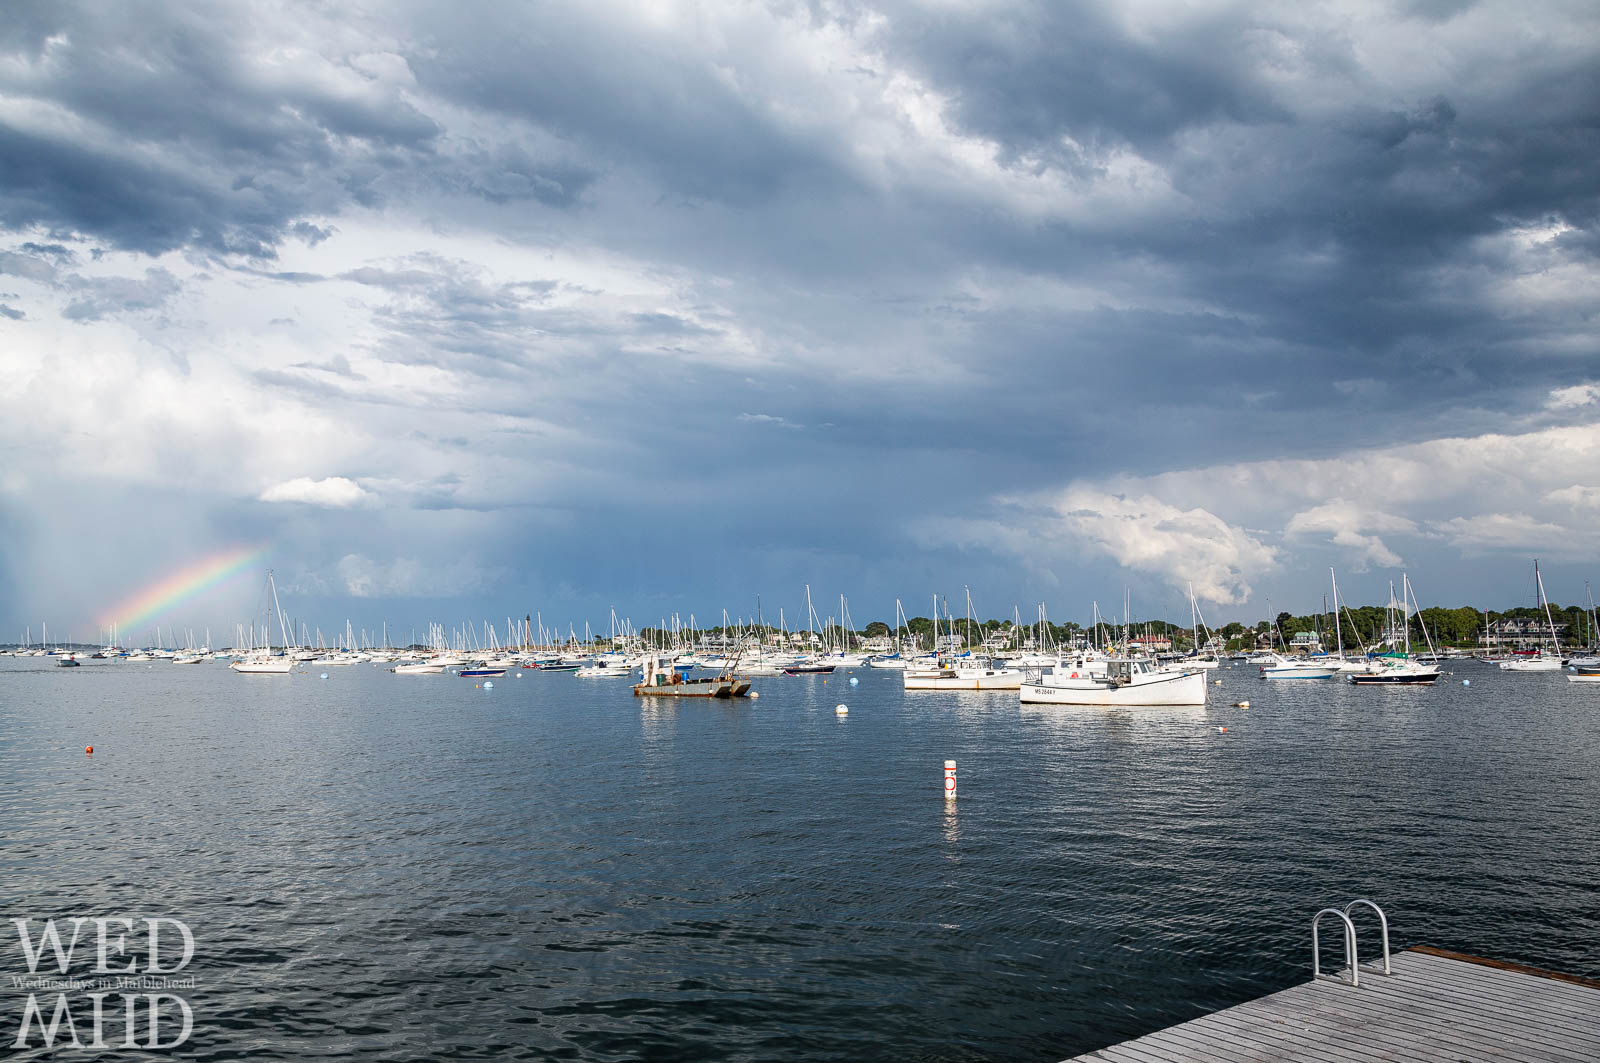 A rainbow appears over a full Marblehead Harbor as seen from the float at Crocker Park